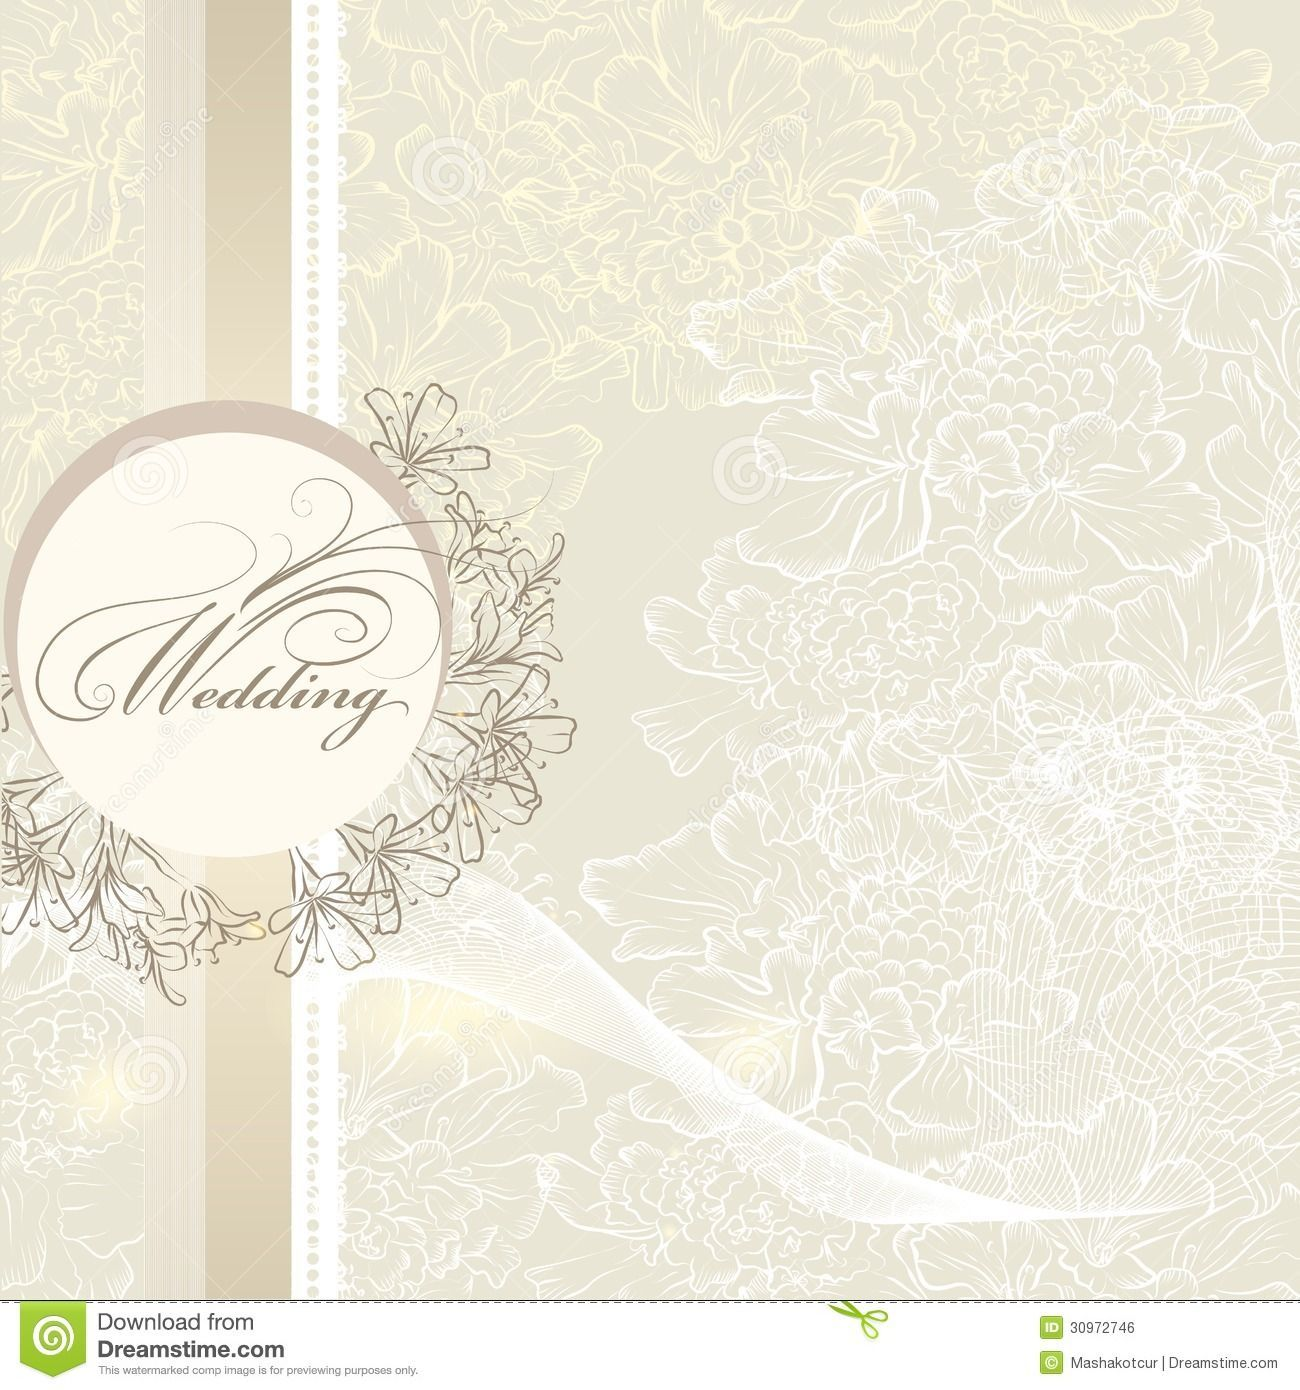 Elegant Wedding Invitation Card Template  Elegant wedding